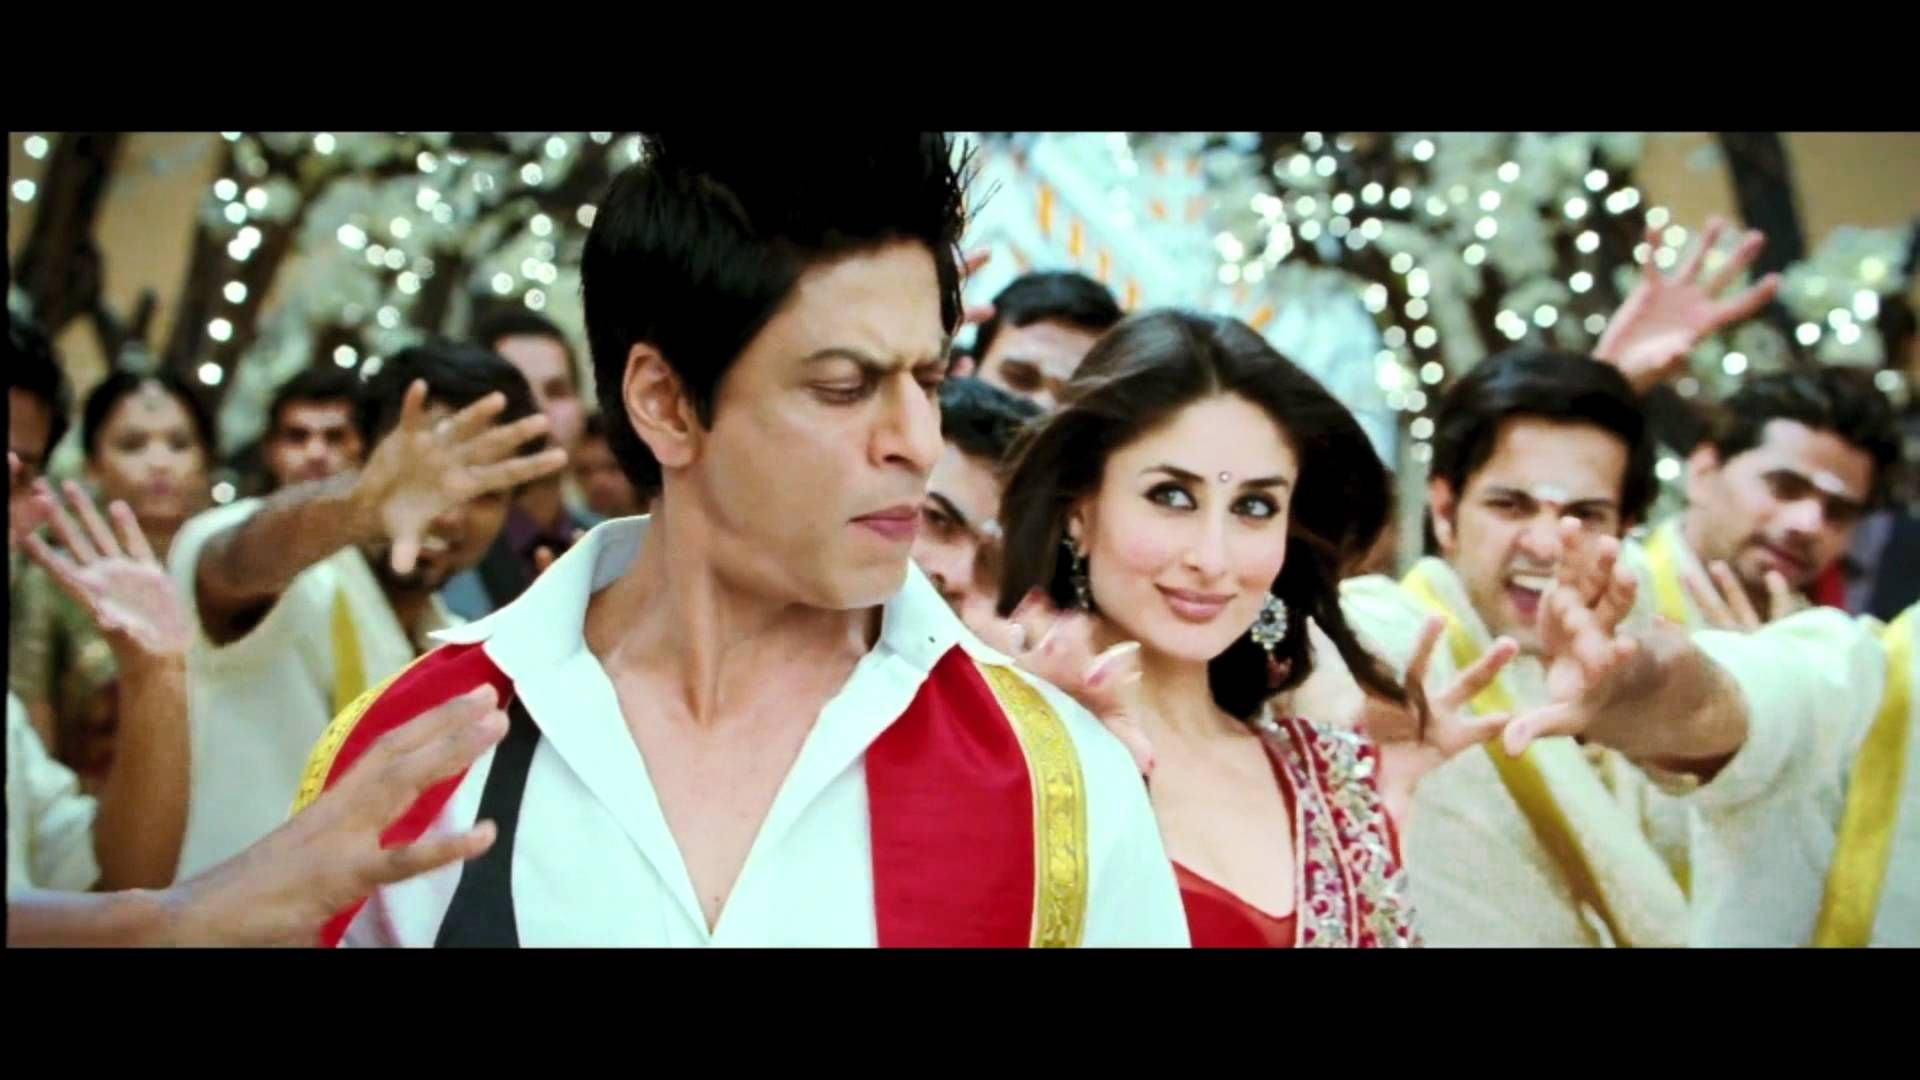 Download and watch anime online streaming: ra one hindi movie.